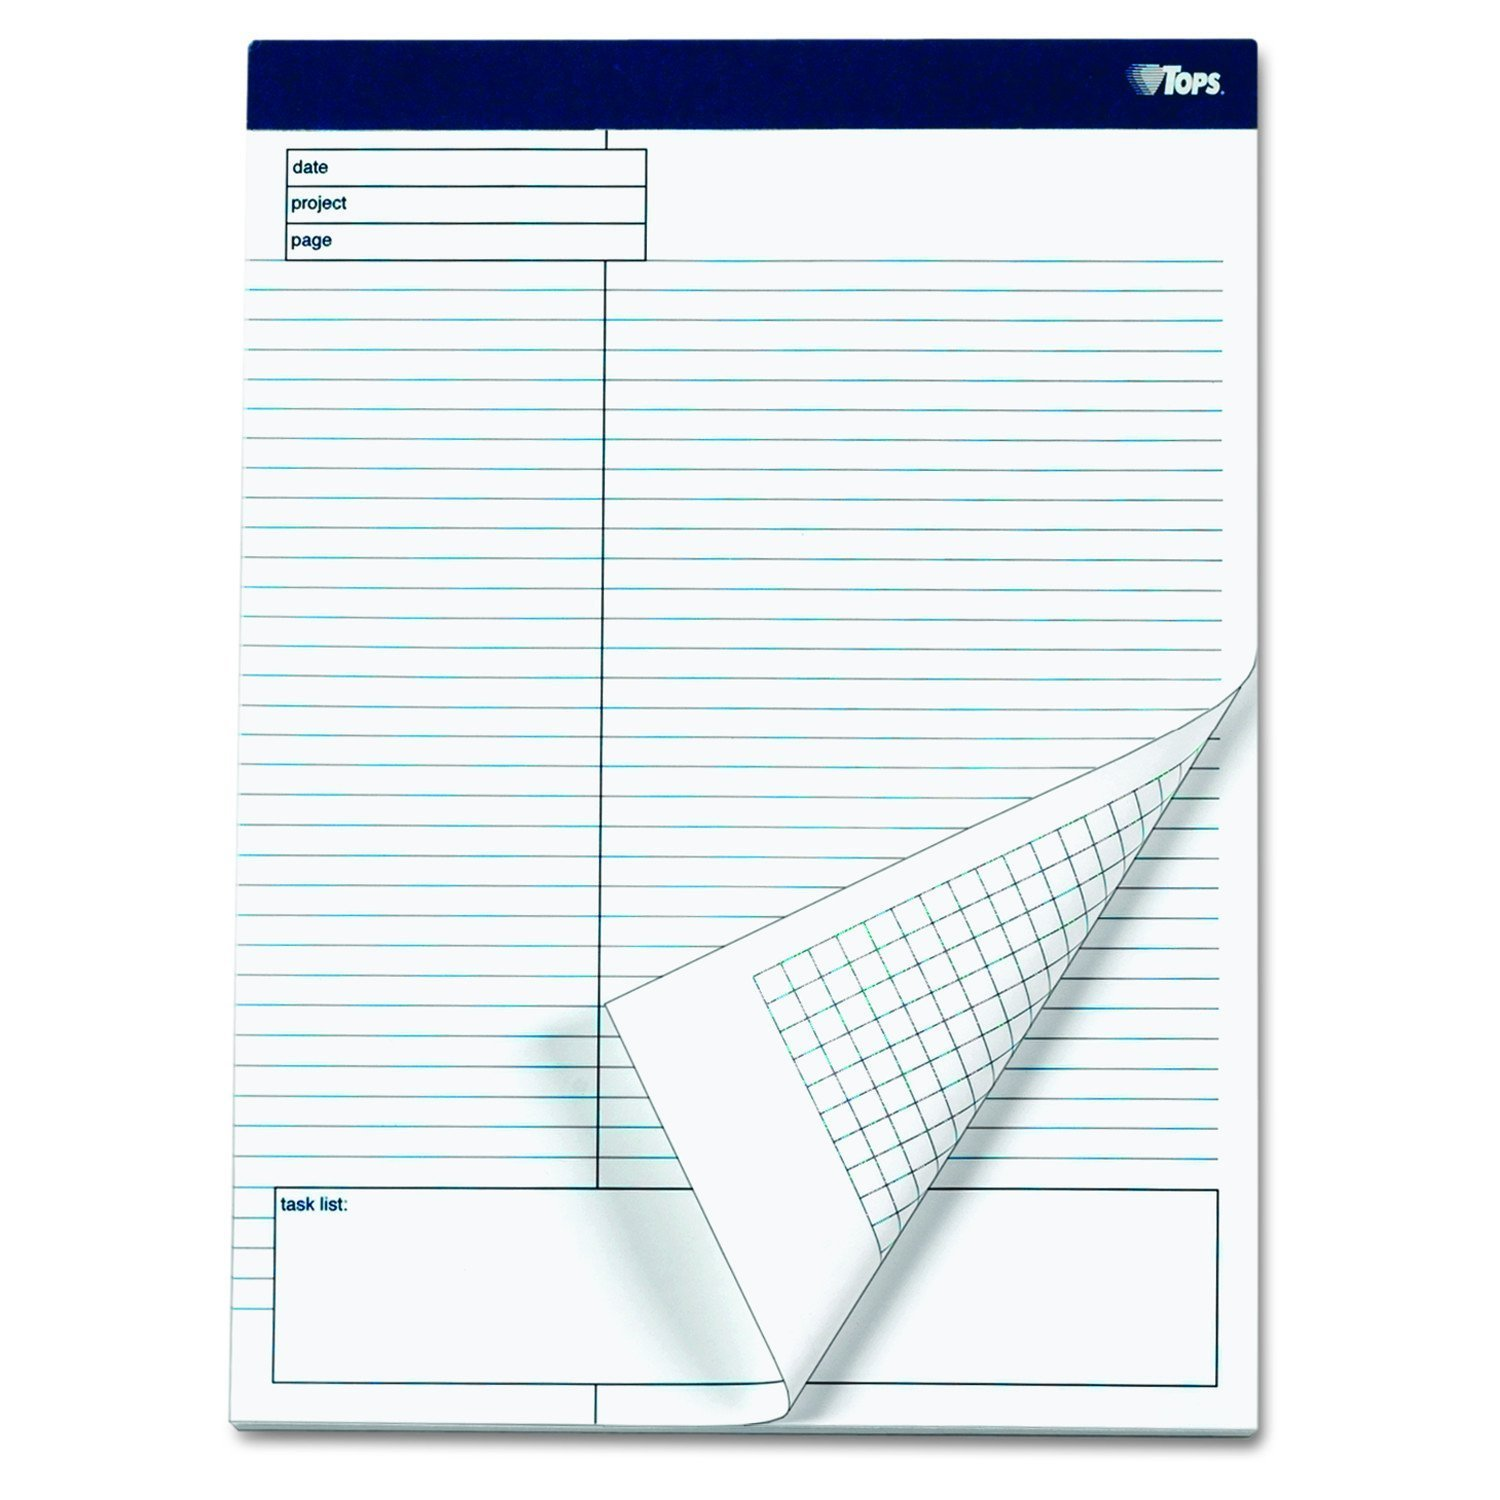 2 X TOPS Docket Gold Project Planning Pad, 8-1/2 x 11-3/4 Inches, Perforated, White, Project Rule, 40 Sheets per Pad, 4 Pads per Pack (77102)